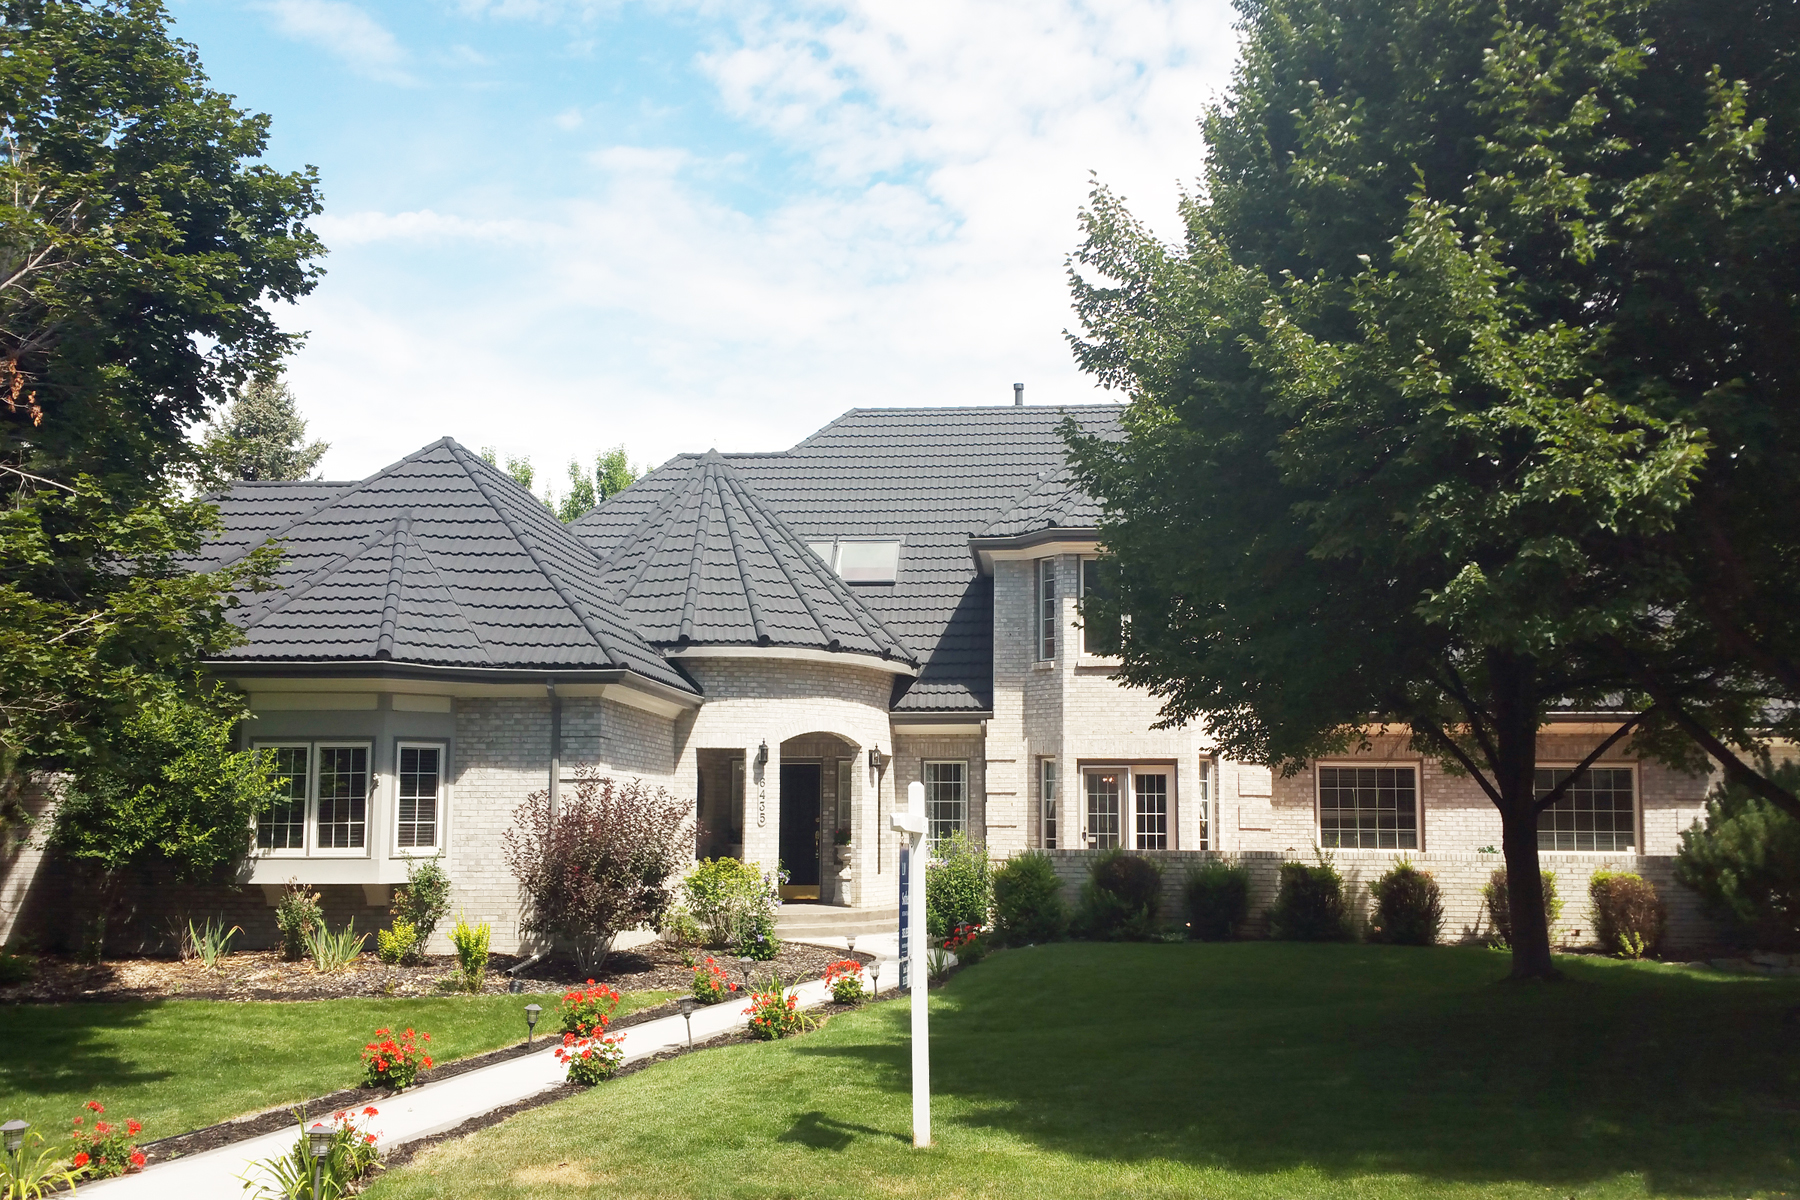 Property For Sale at Terrific home in the highly desirable Charlou neighborhood